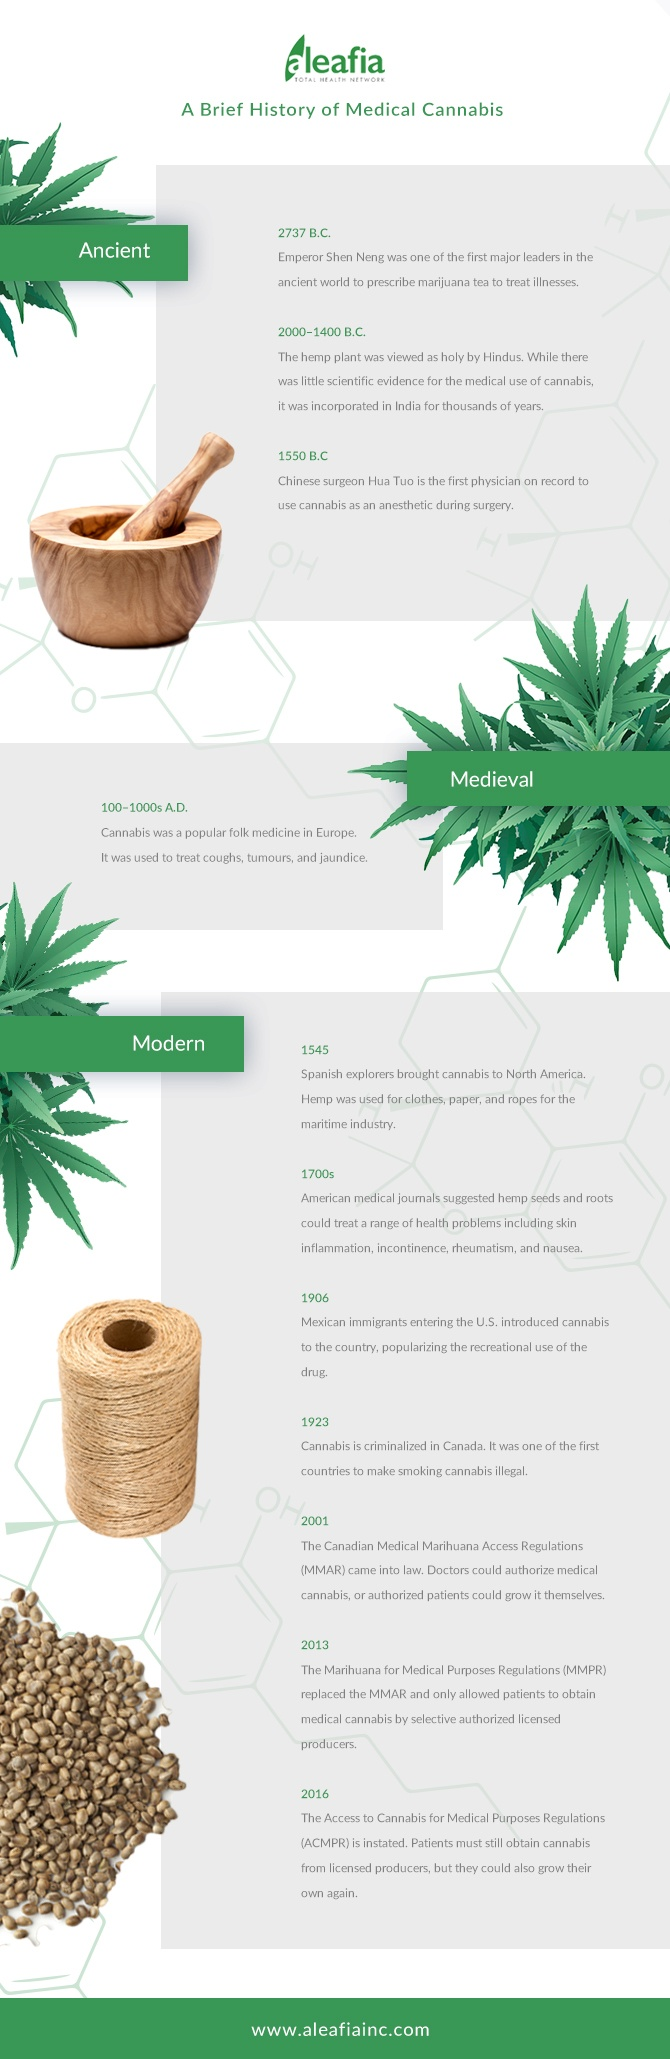 History of Cannabis Infographic